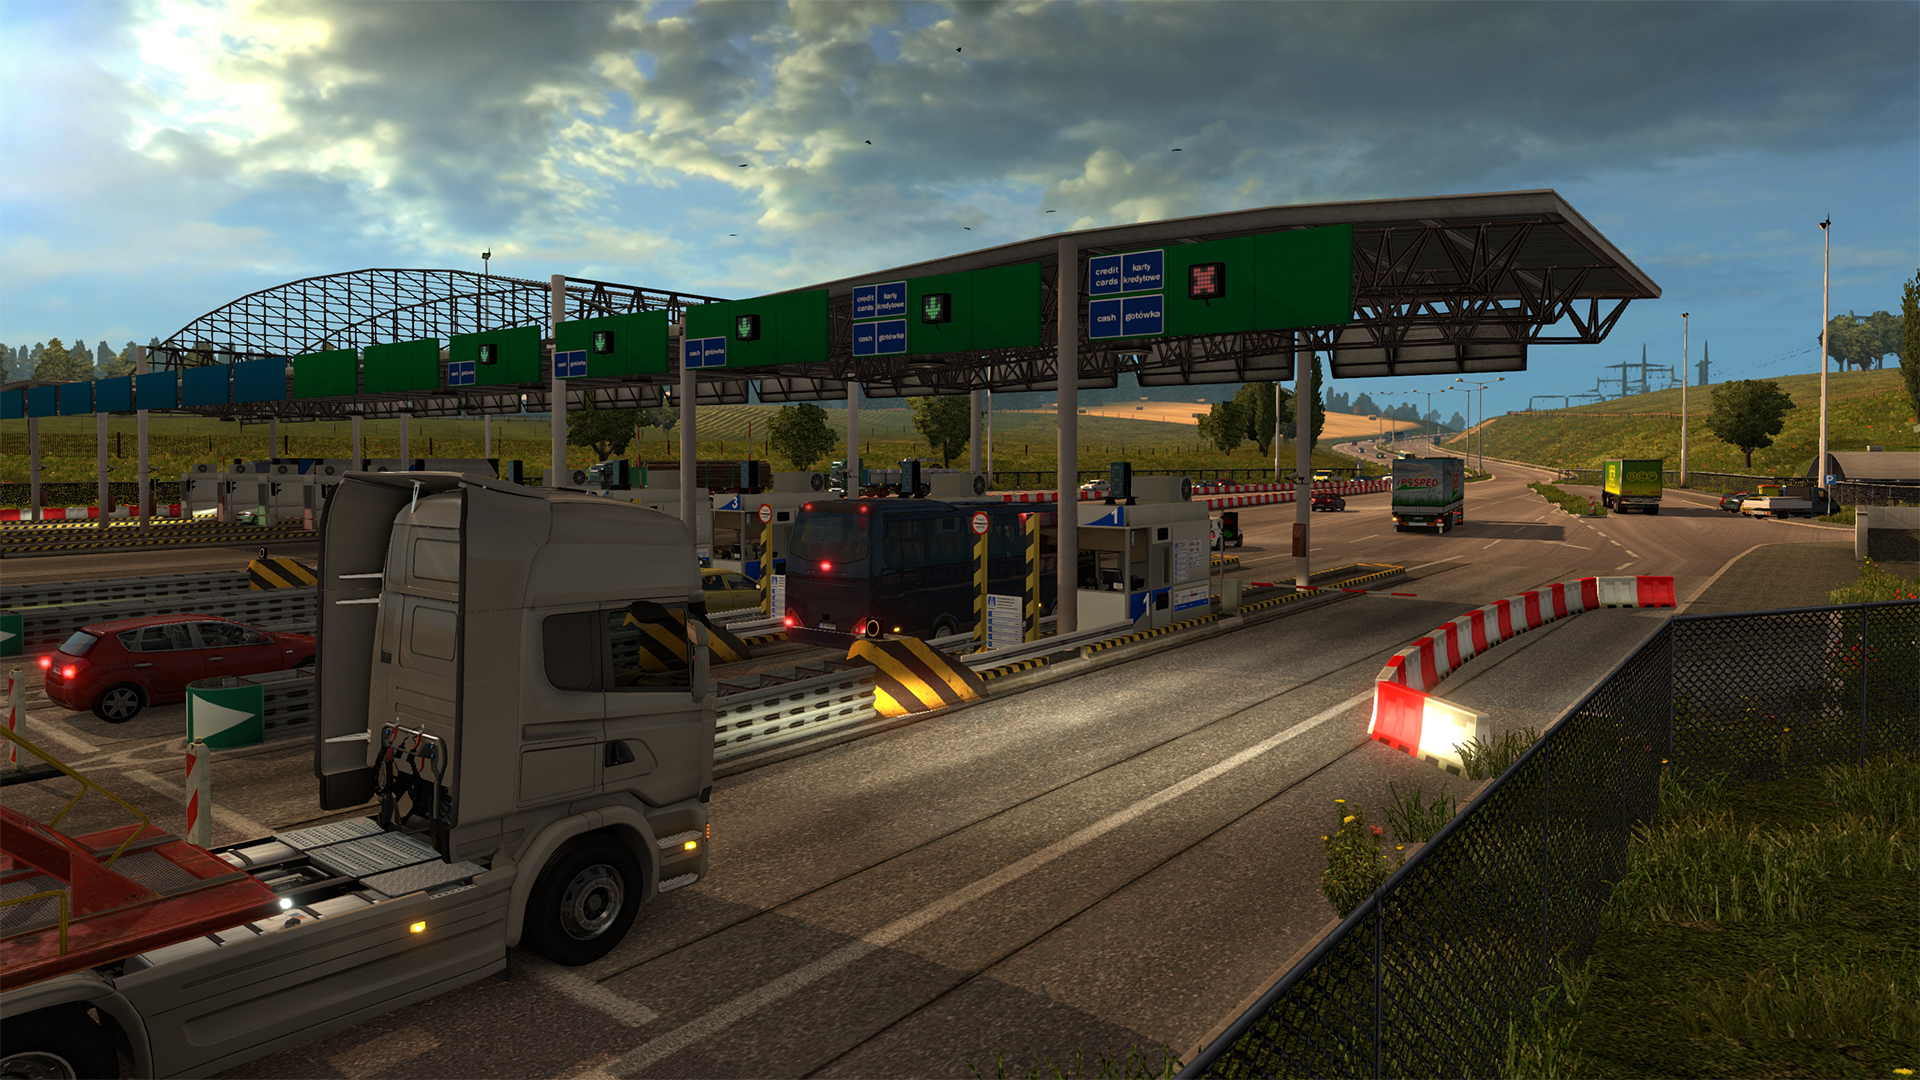 Euro truck simulator 2 gglitch euro truck simulator 2 gumiabroncs Image collections